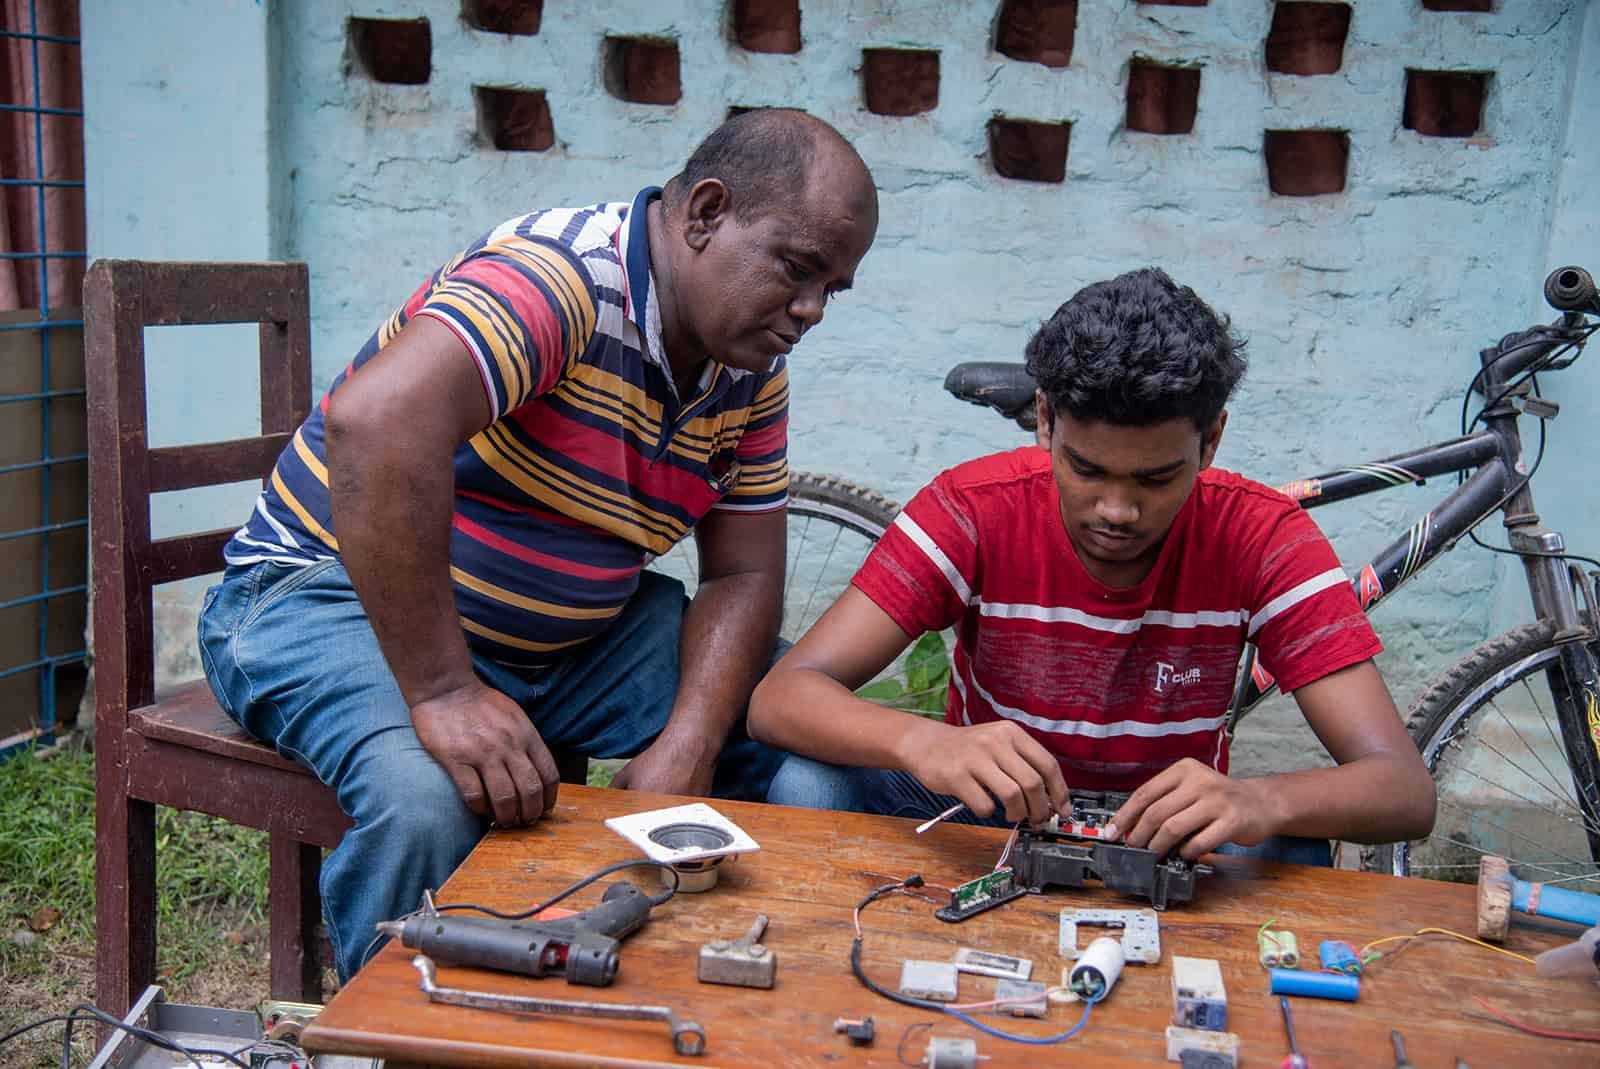 Sanjoy, in a red shirt, and his father, Subhas, in a red, yellow, blue and white shirt, are sitting at a wood table where Sanjoy is working on making a radio from a motherboard. There is a bike in the background.